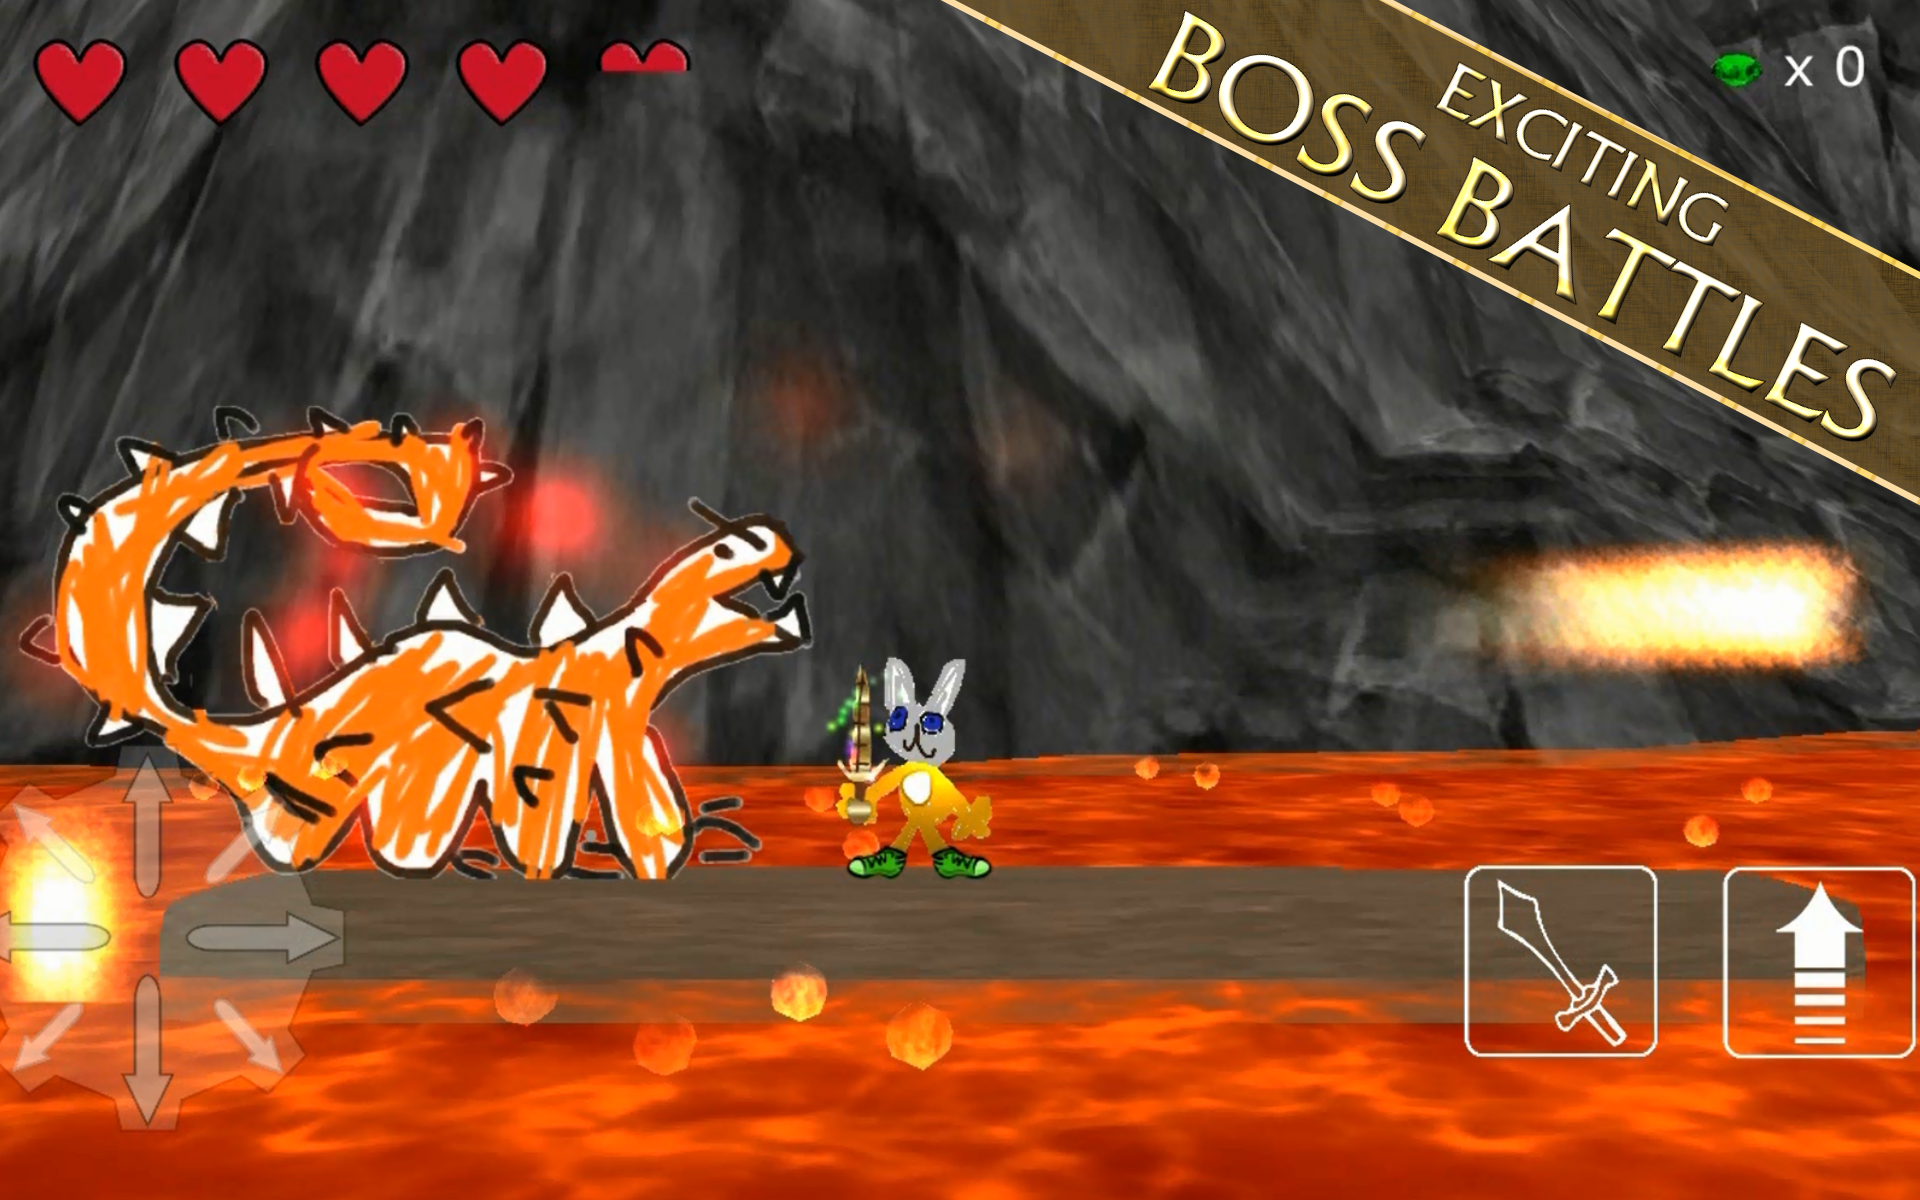 Exciting boss battles!